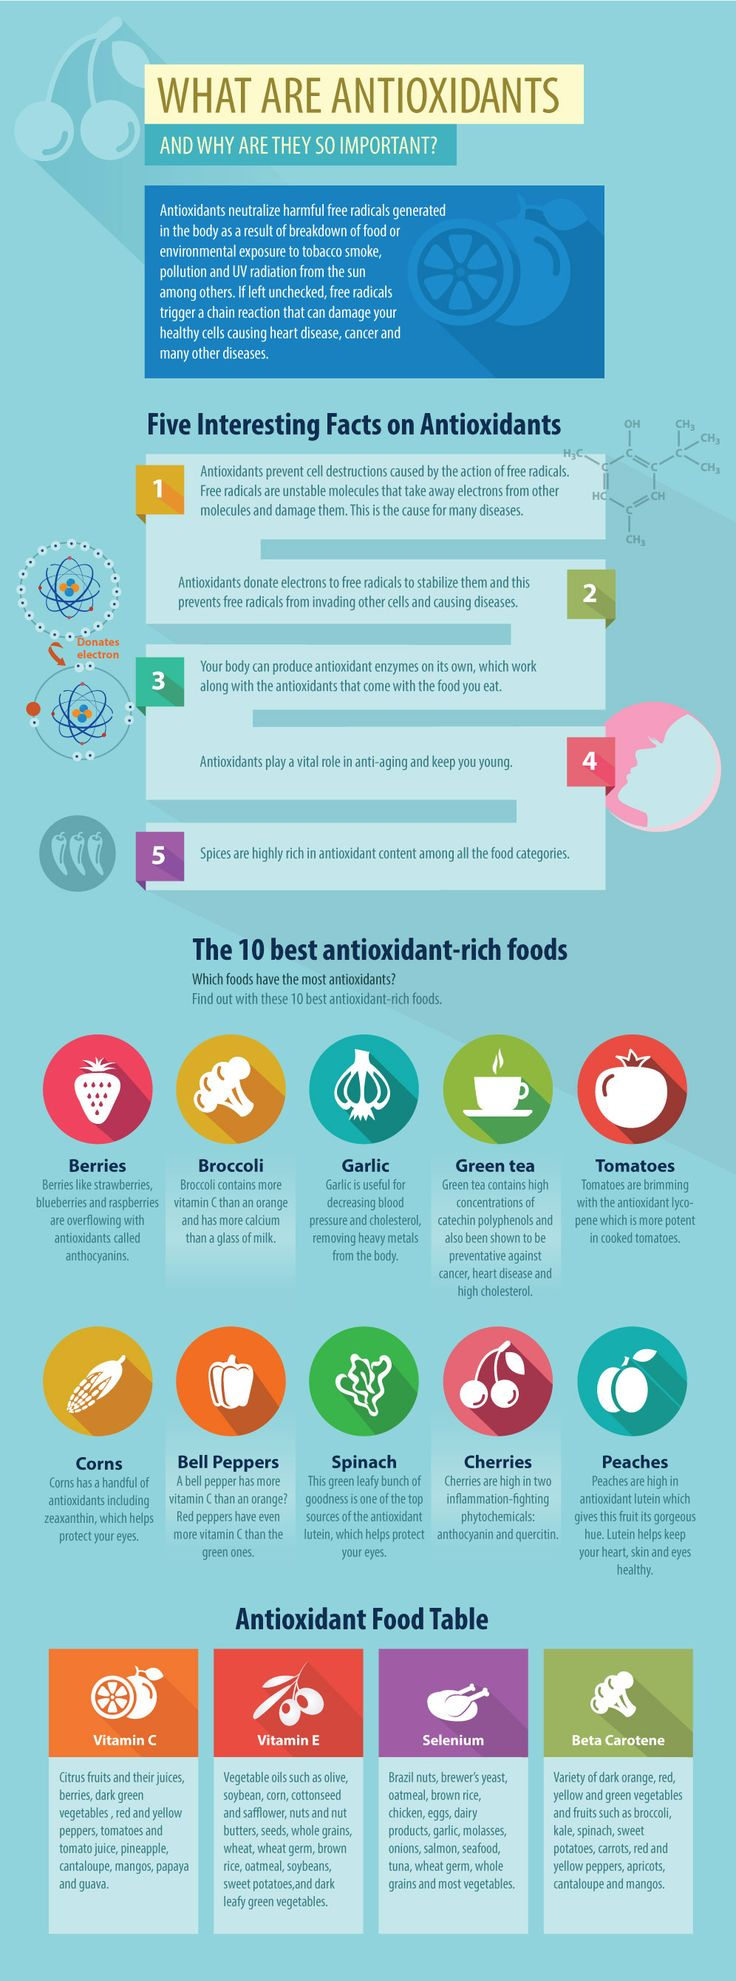 What Are Antioxidants Infographic   www.onedoterracommunity.com   https://www.facebook.com/#!/OneDoterraCommunity